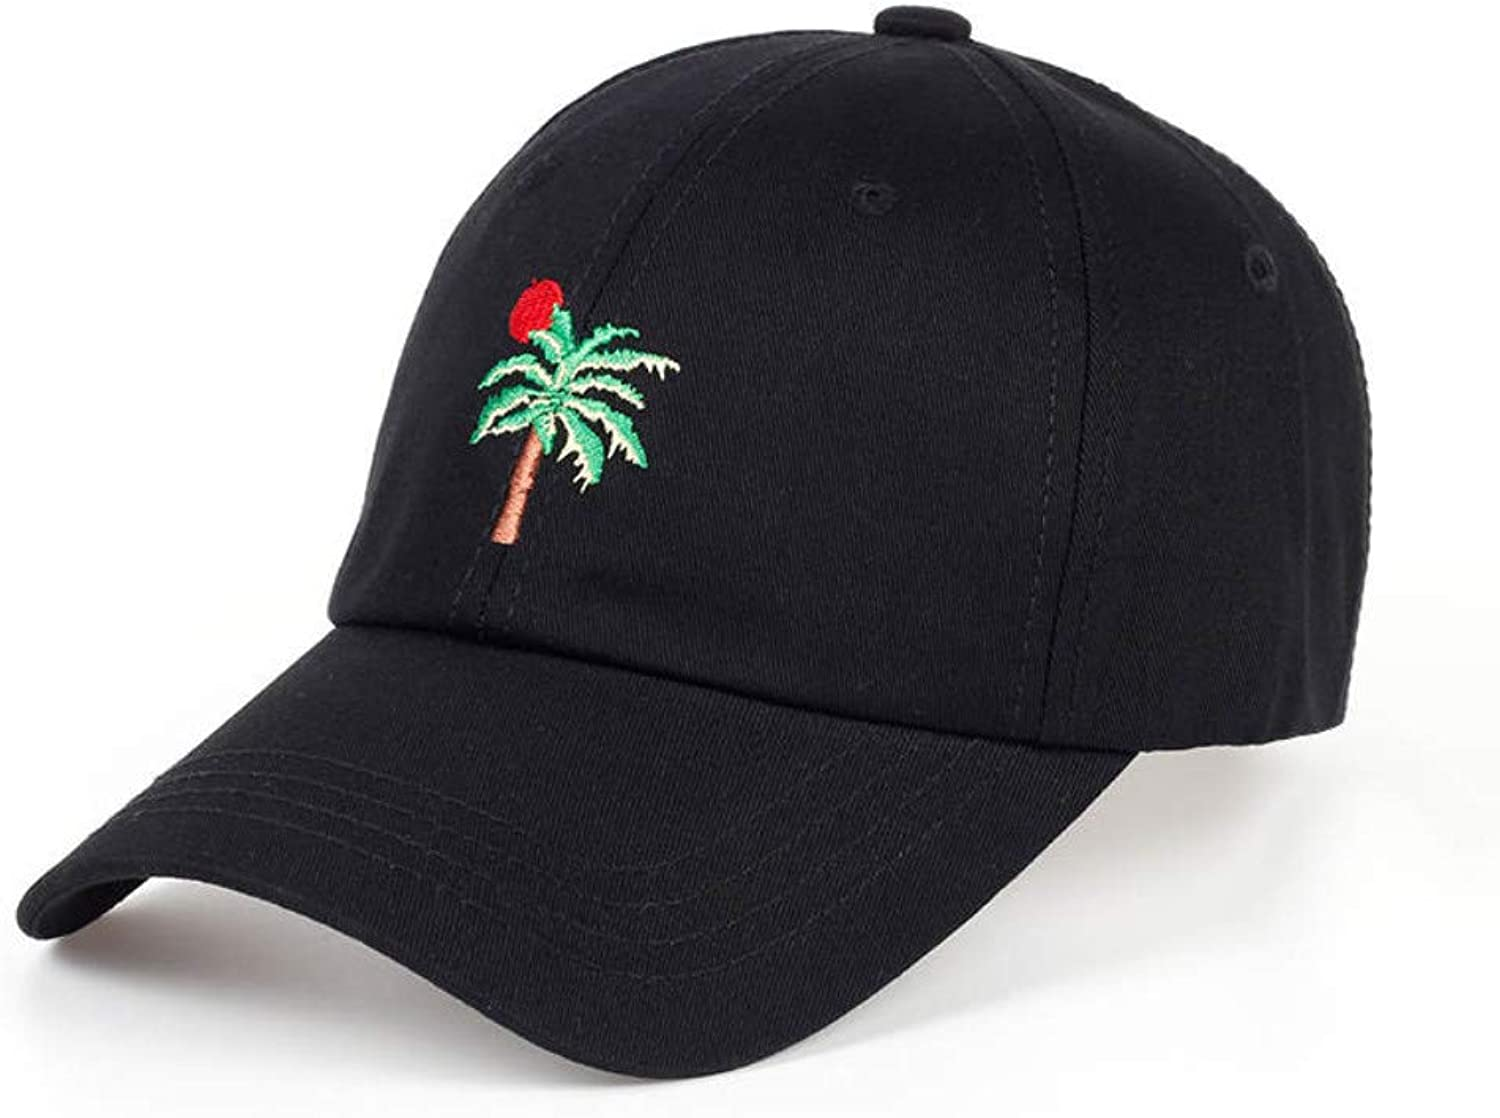 56053ee1d Chlally New Adjustable Embroidery Palm Trees Curved Snapback ...